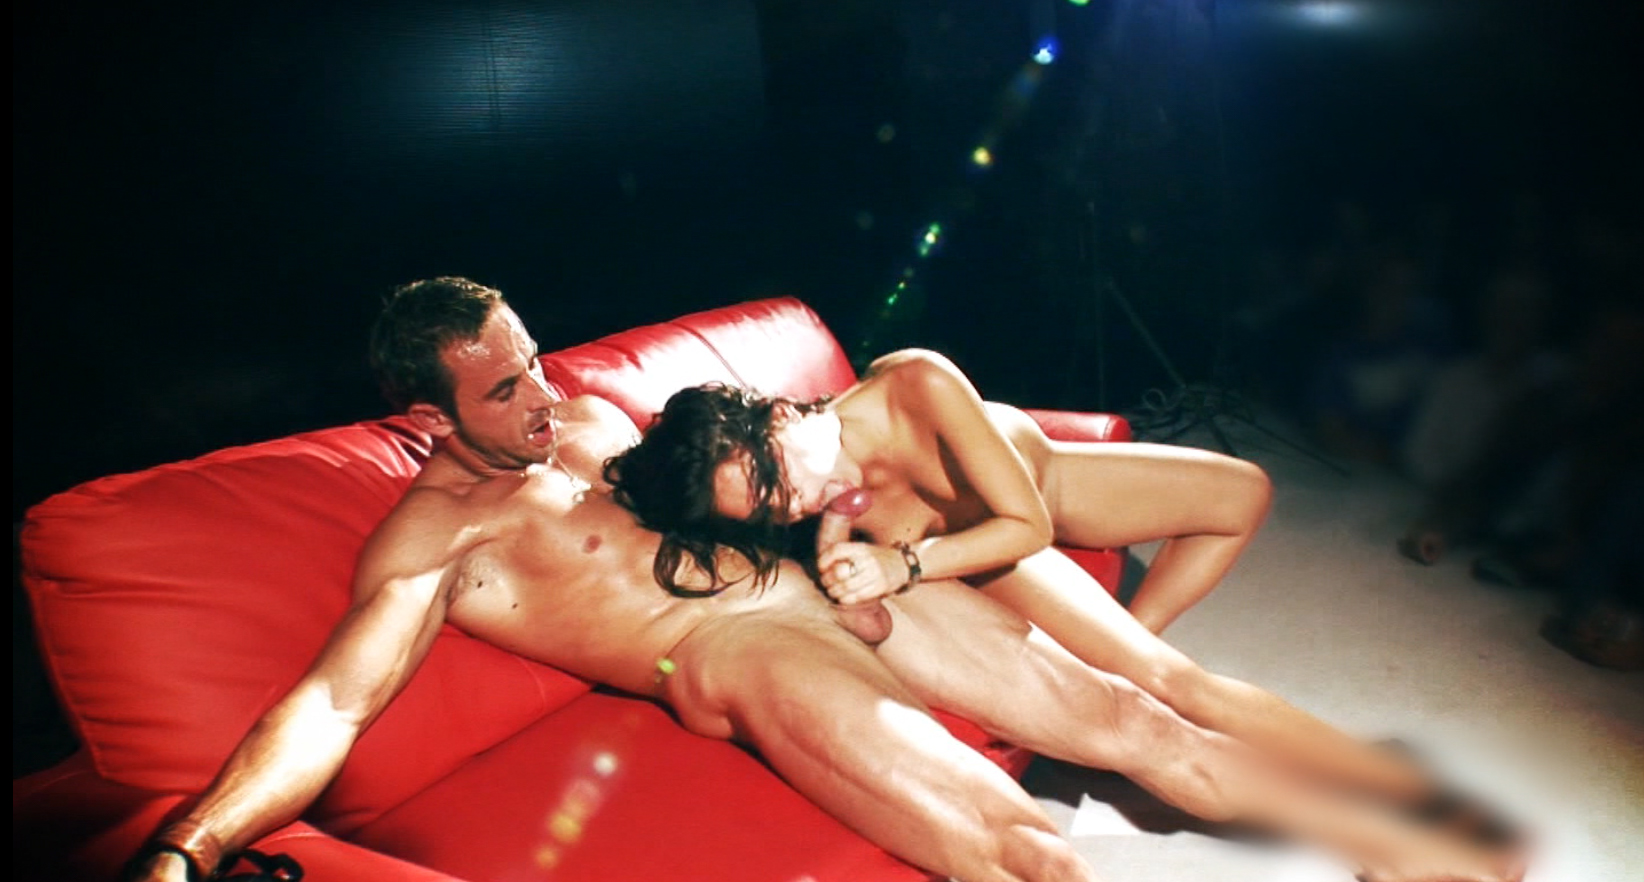 couples fucking the escort series